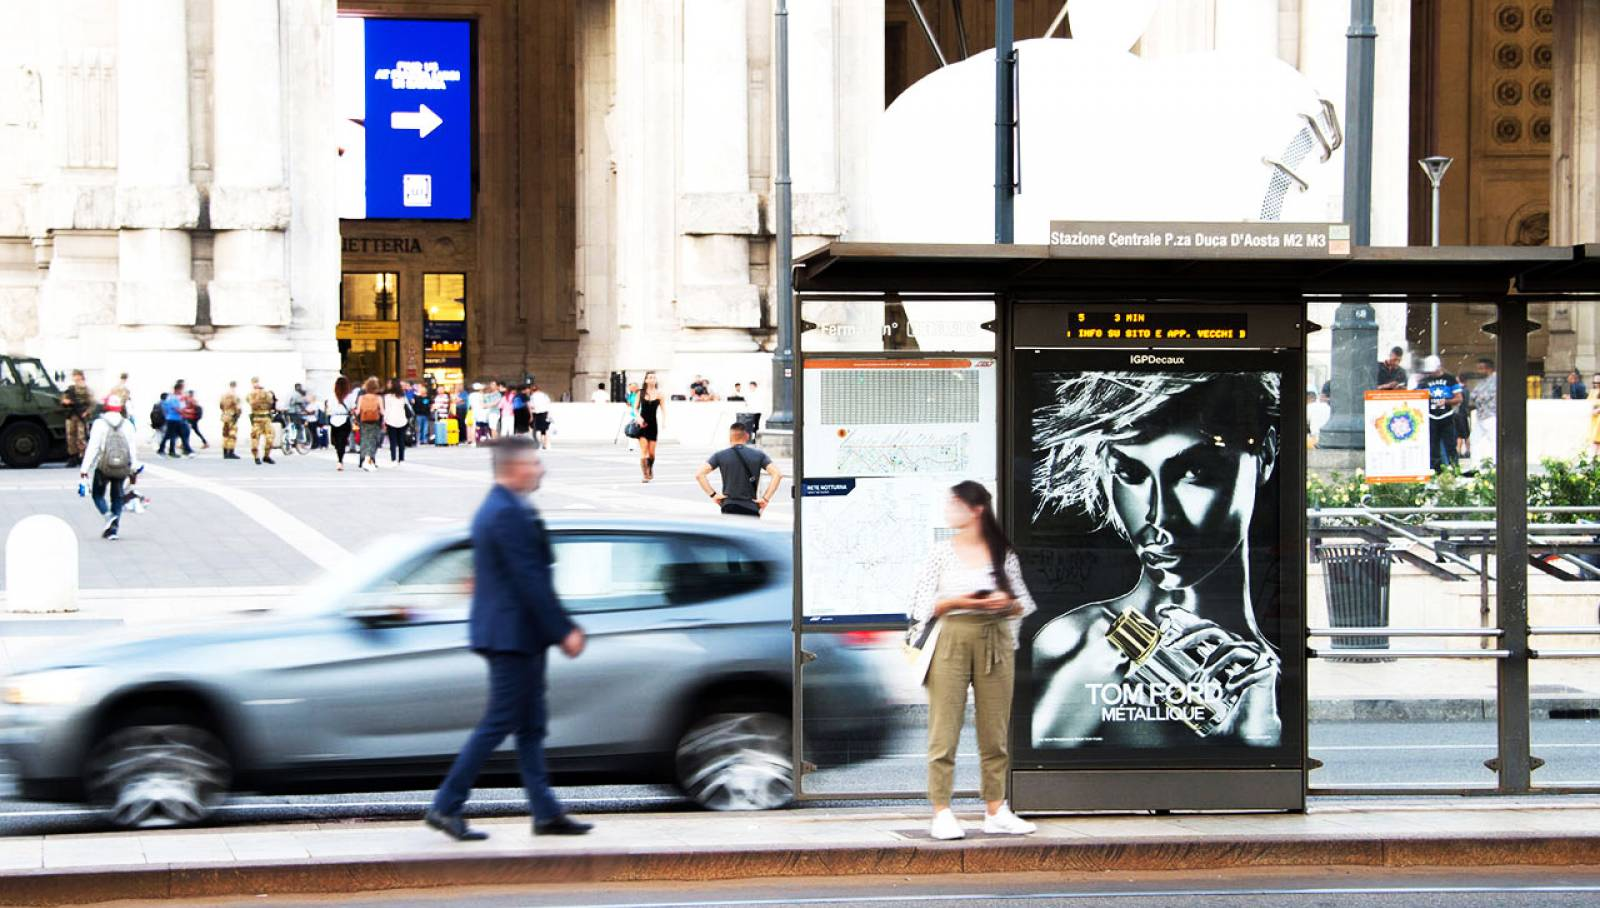 Bus shelters for Tom Ford IGPDecaux Milan